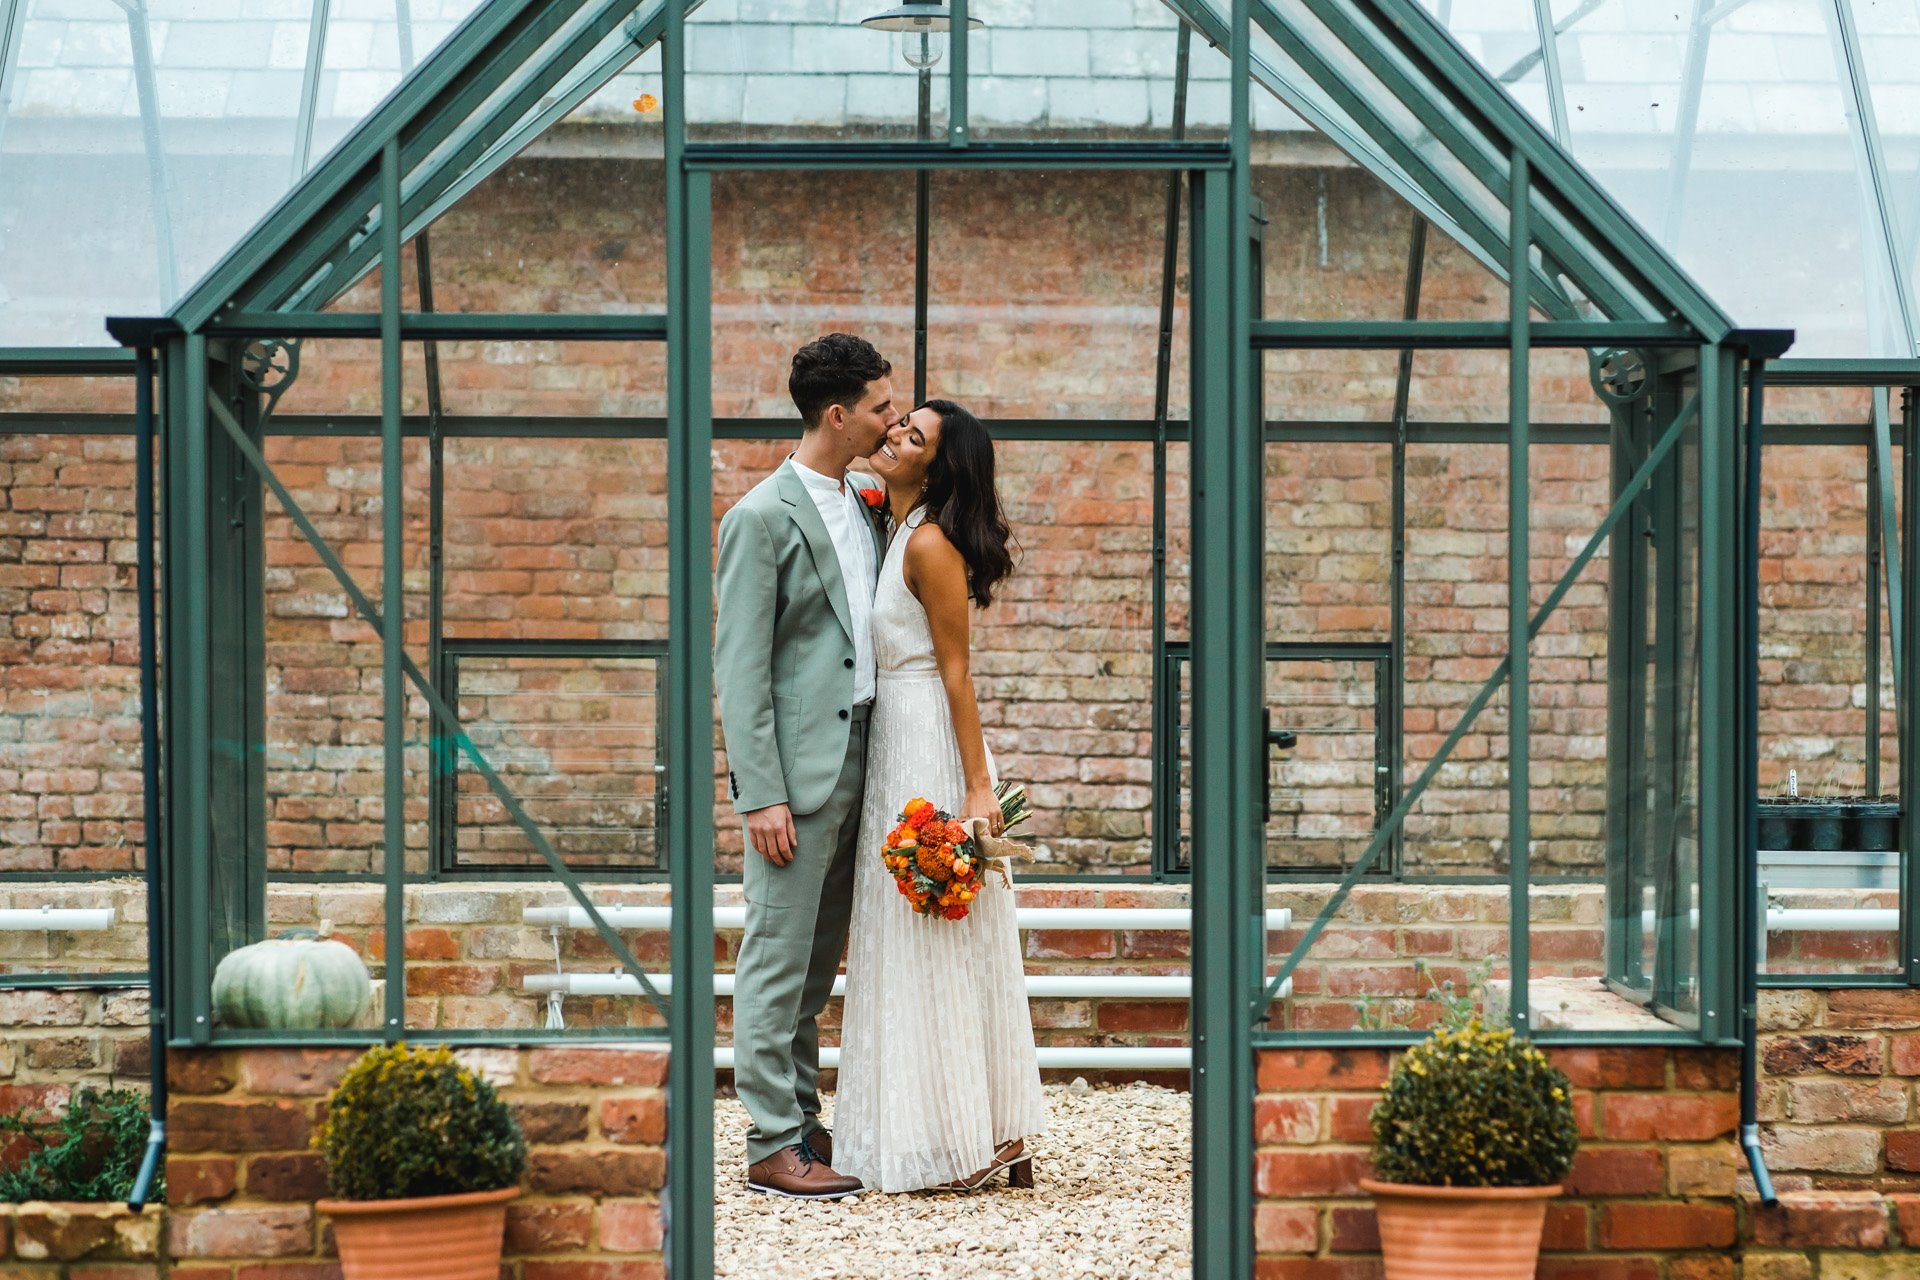 Bride and groom kiss in a glasshouse at a micro wedding at elmore court